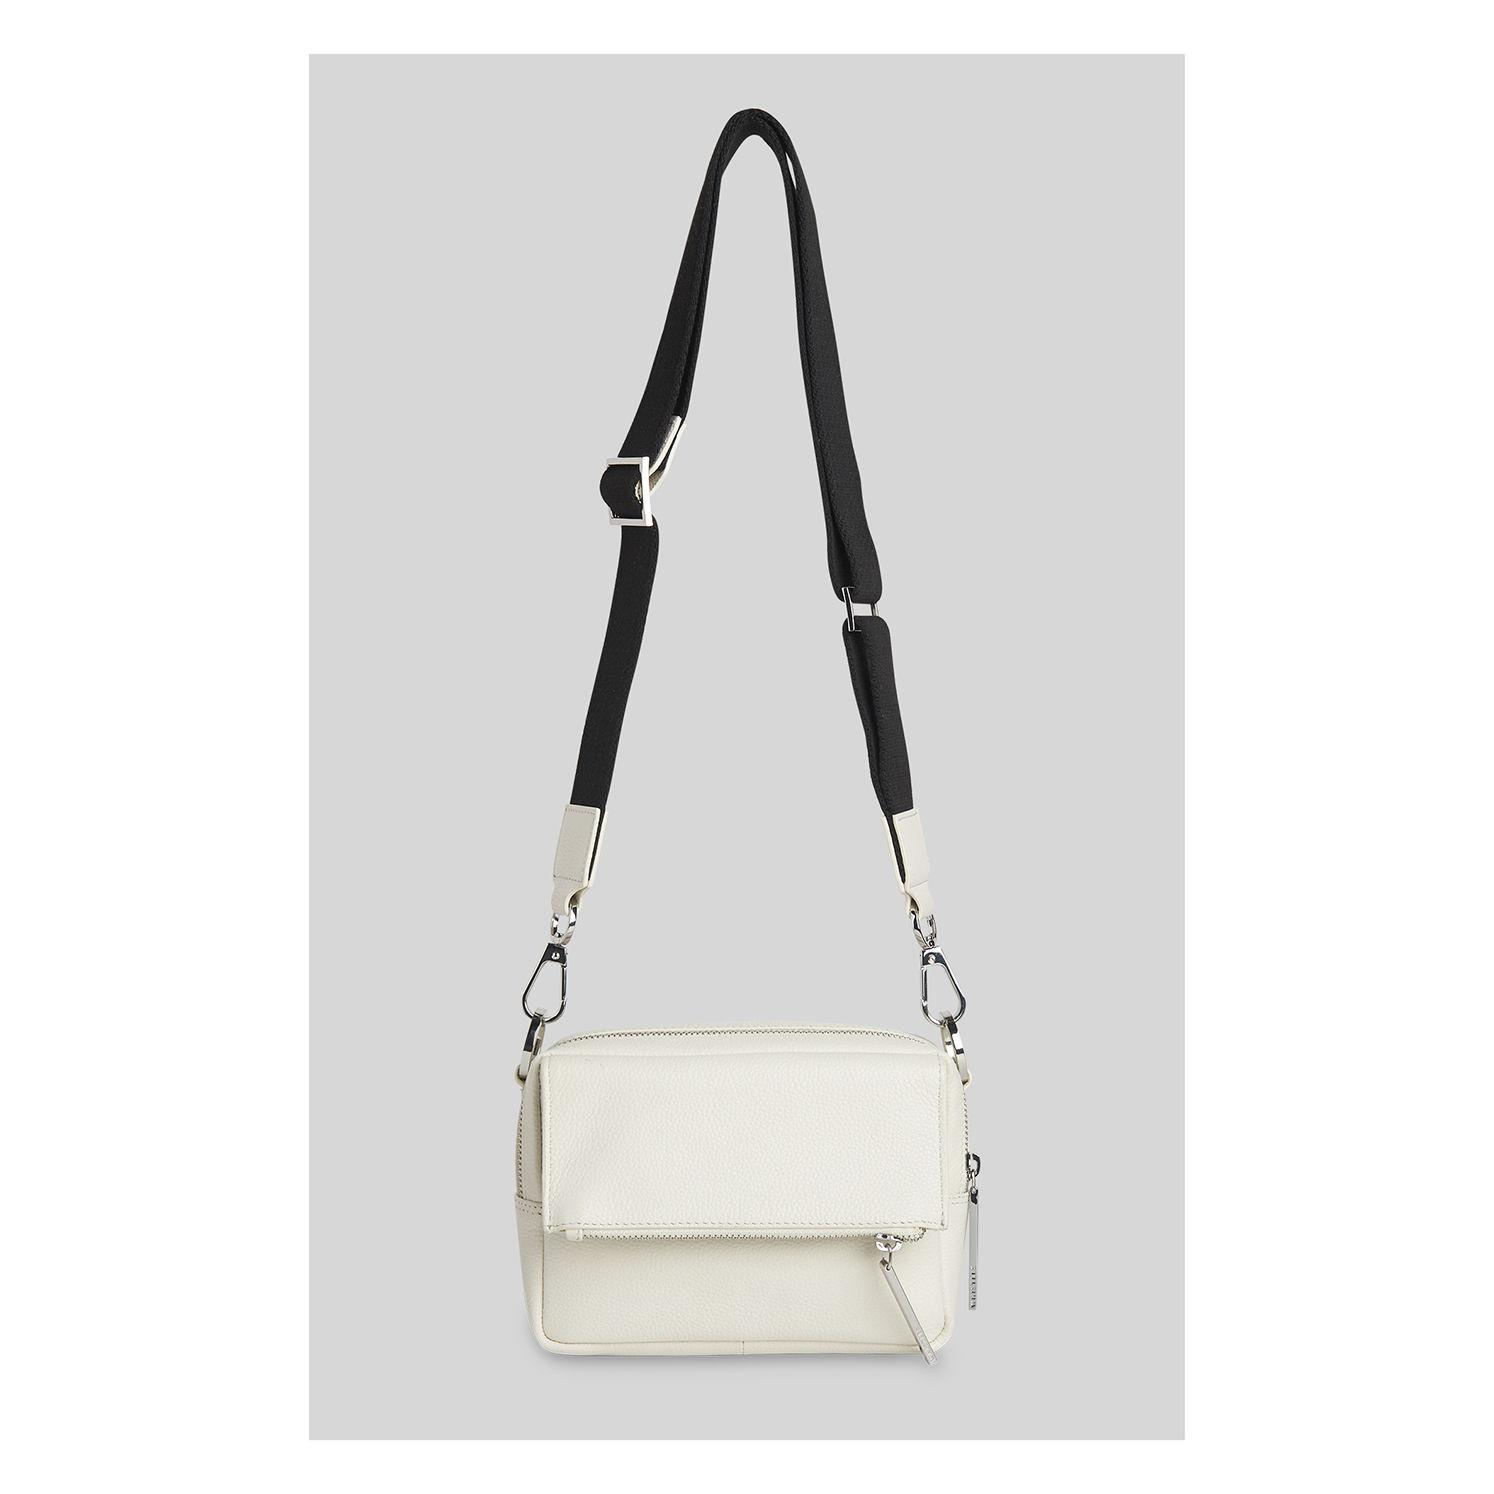 Whistles Bibi Crossbody Bag in White - Lyst 61d7d33f317ce